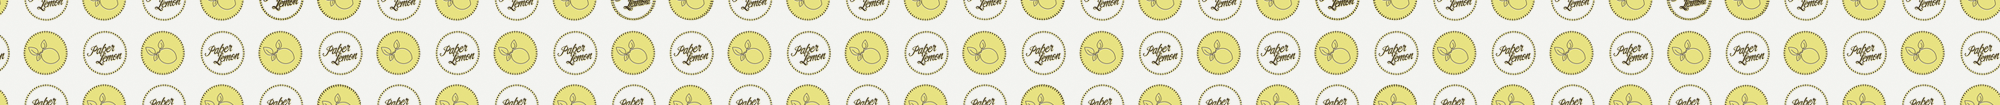 Pattern_Banner3.png